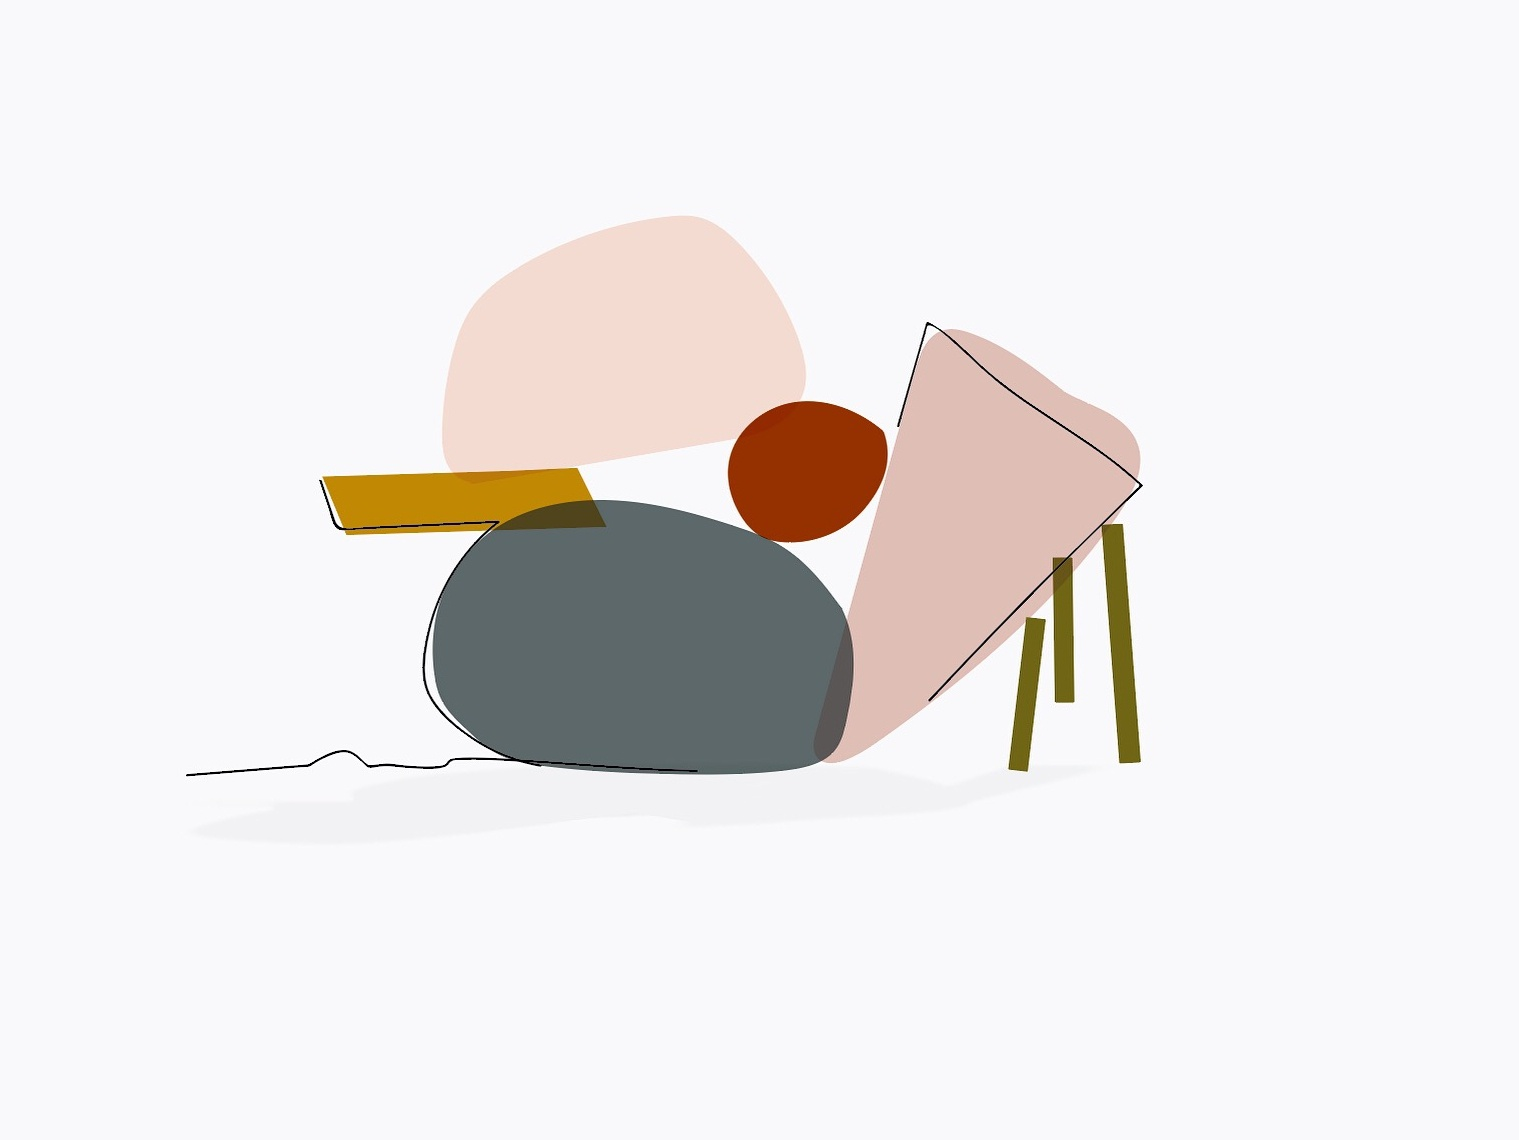 Stable? flat illustraion abstract shape line shadow balance overlay color cairn doodle illustration design vector